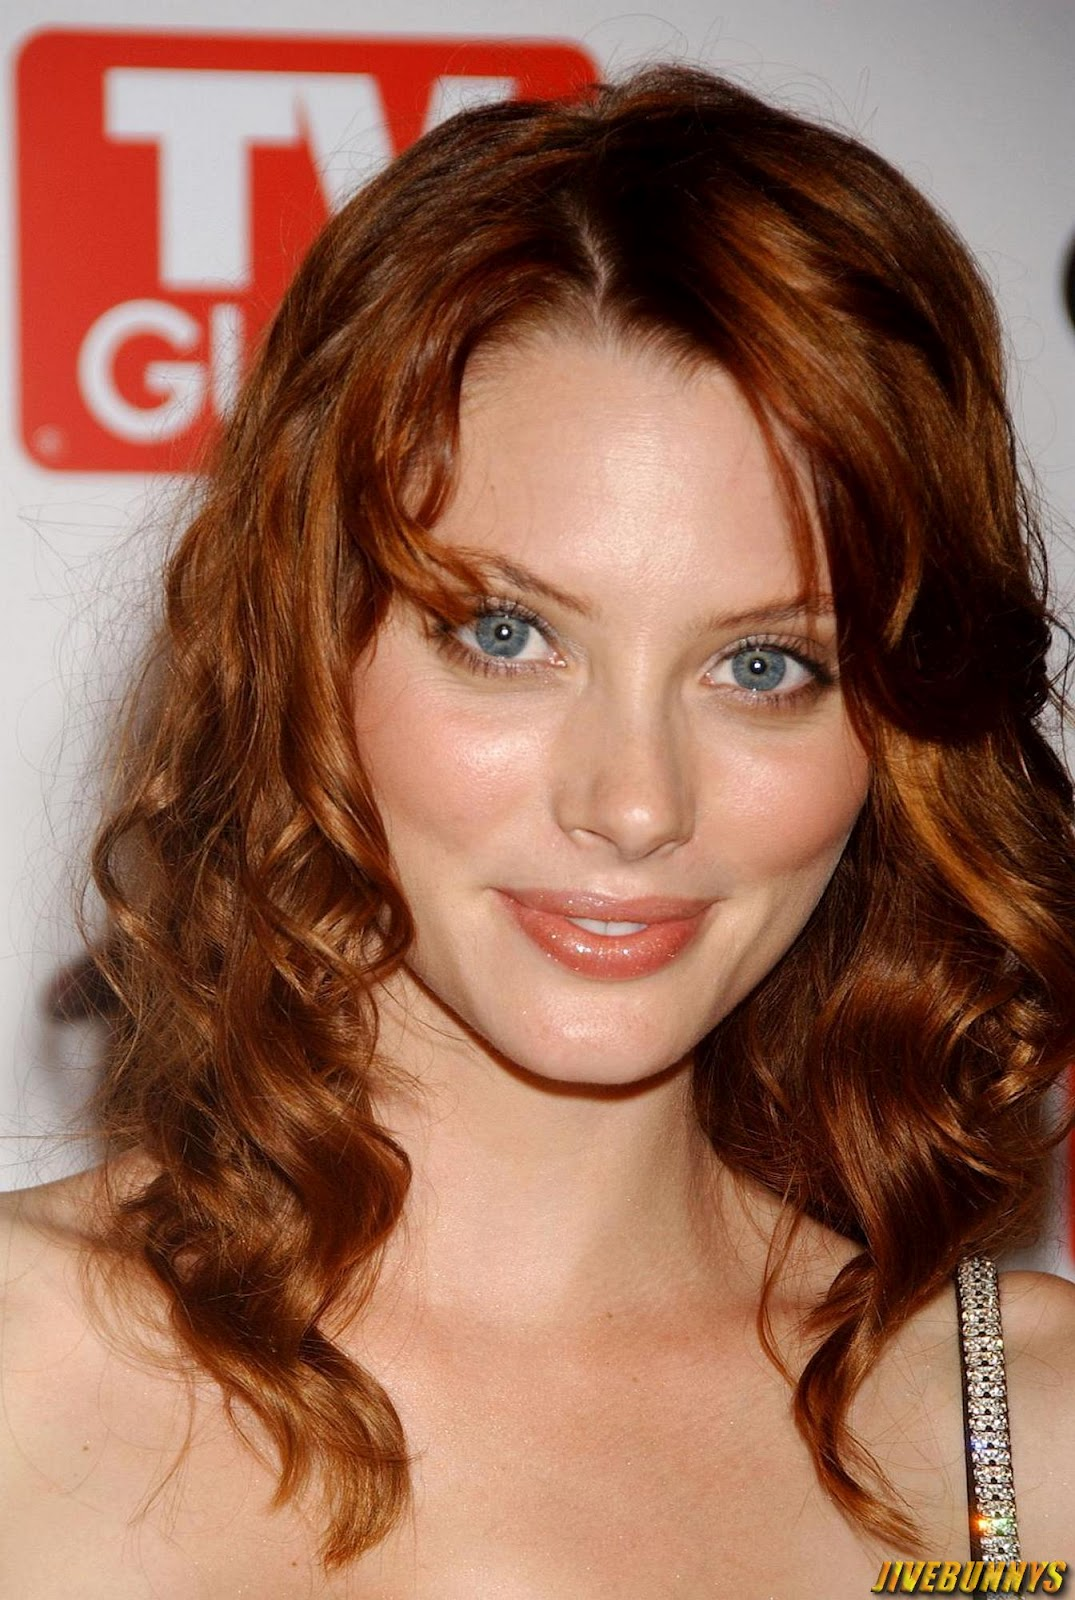 april bowlby butt naked